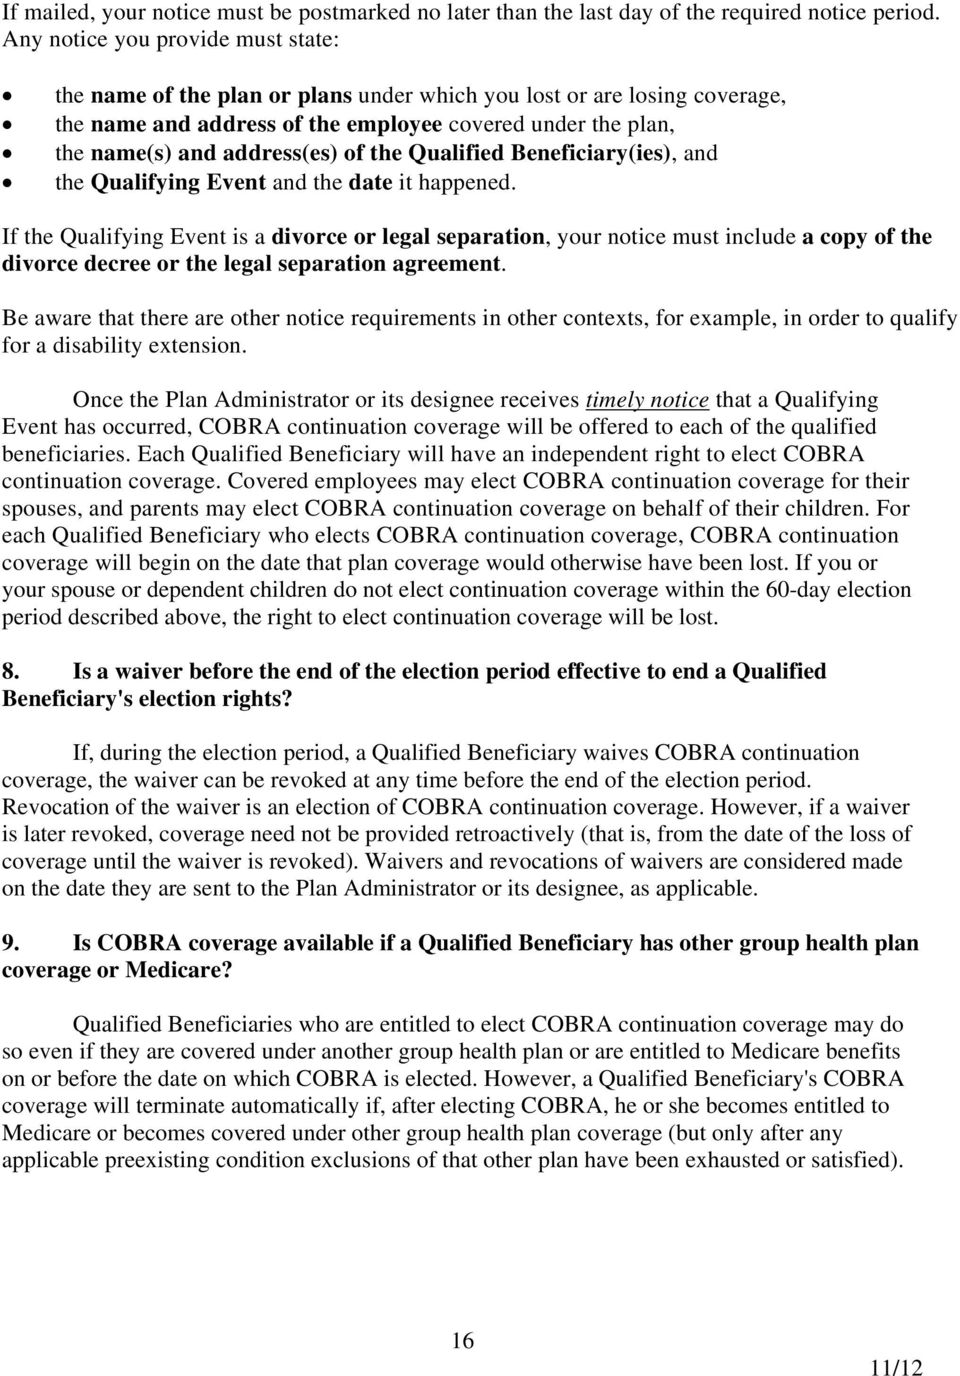 of the Qualified Beneficiary(ies), and the Qualifying Event and the date it happened.